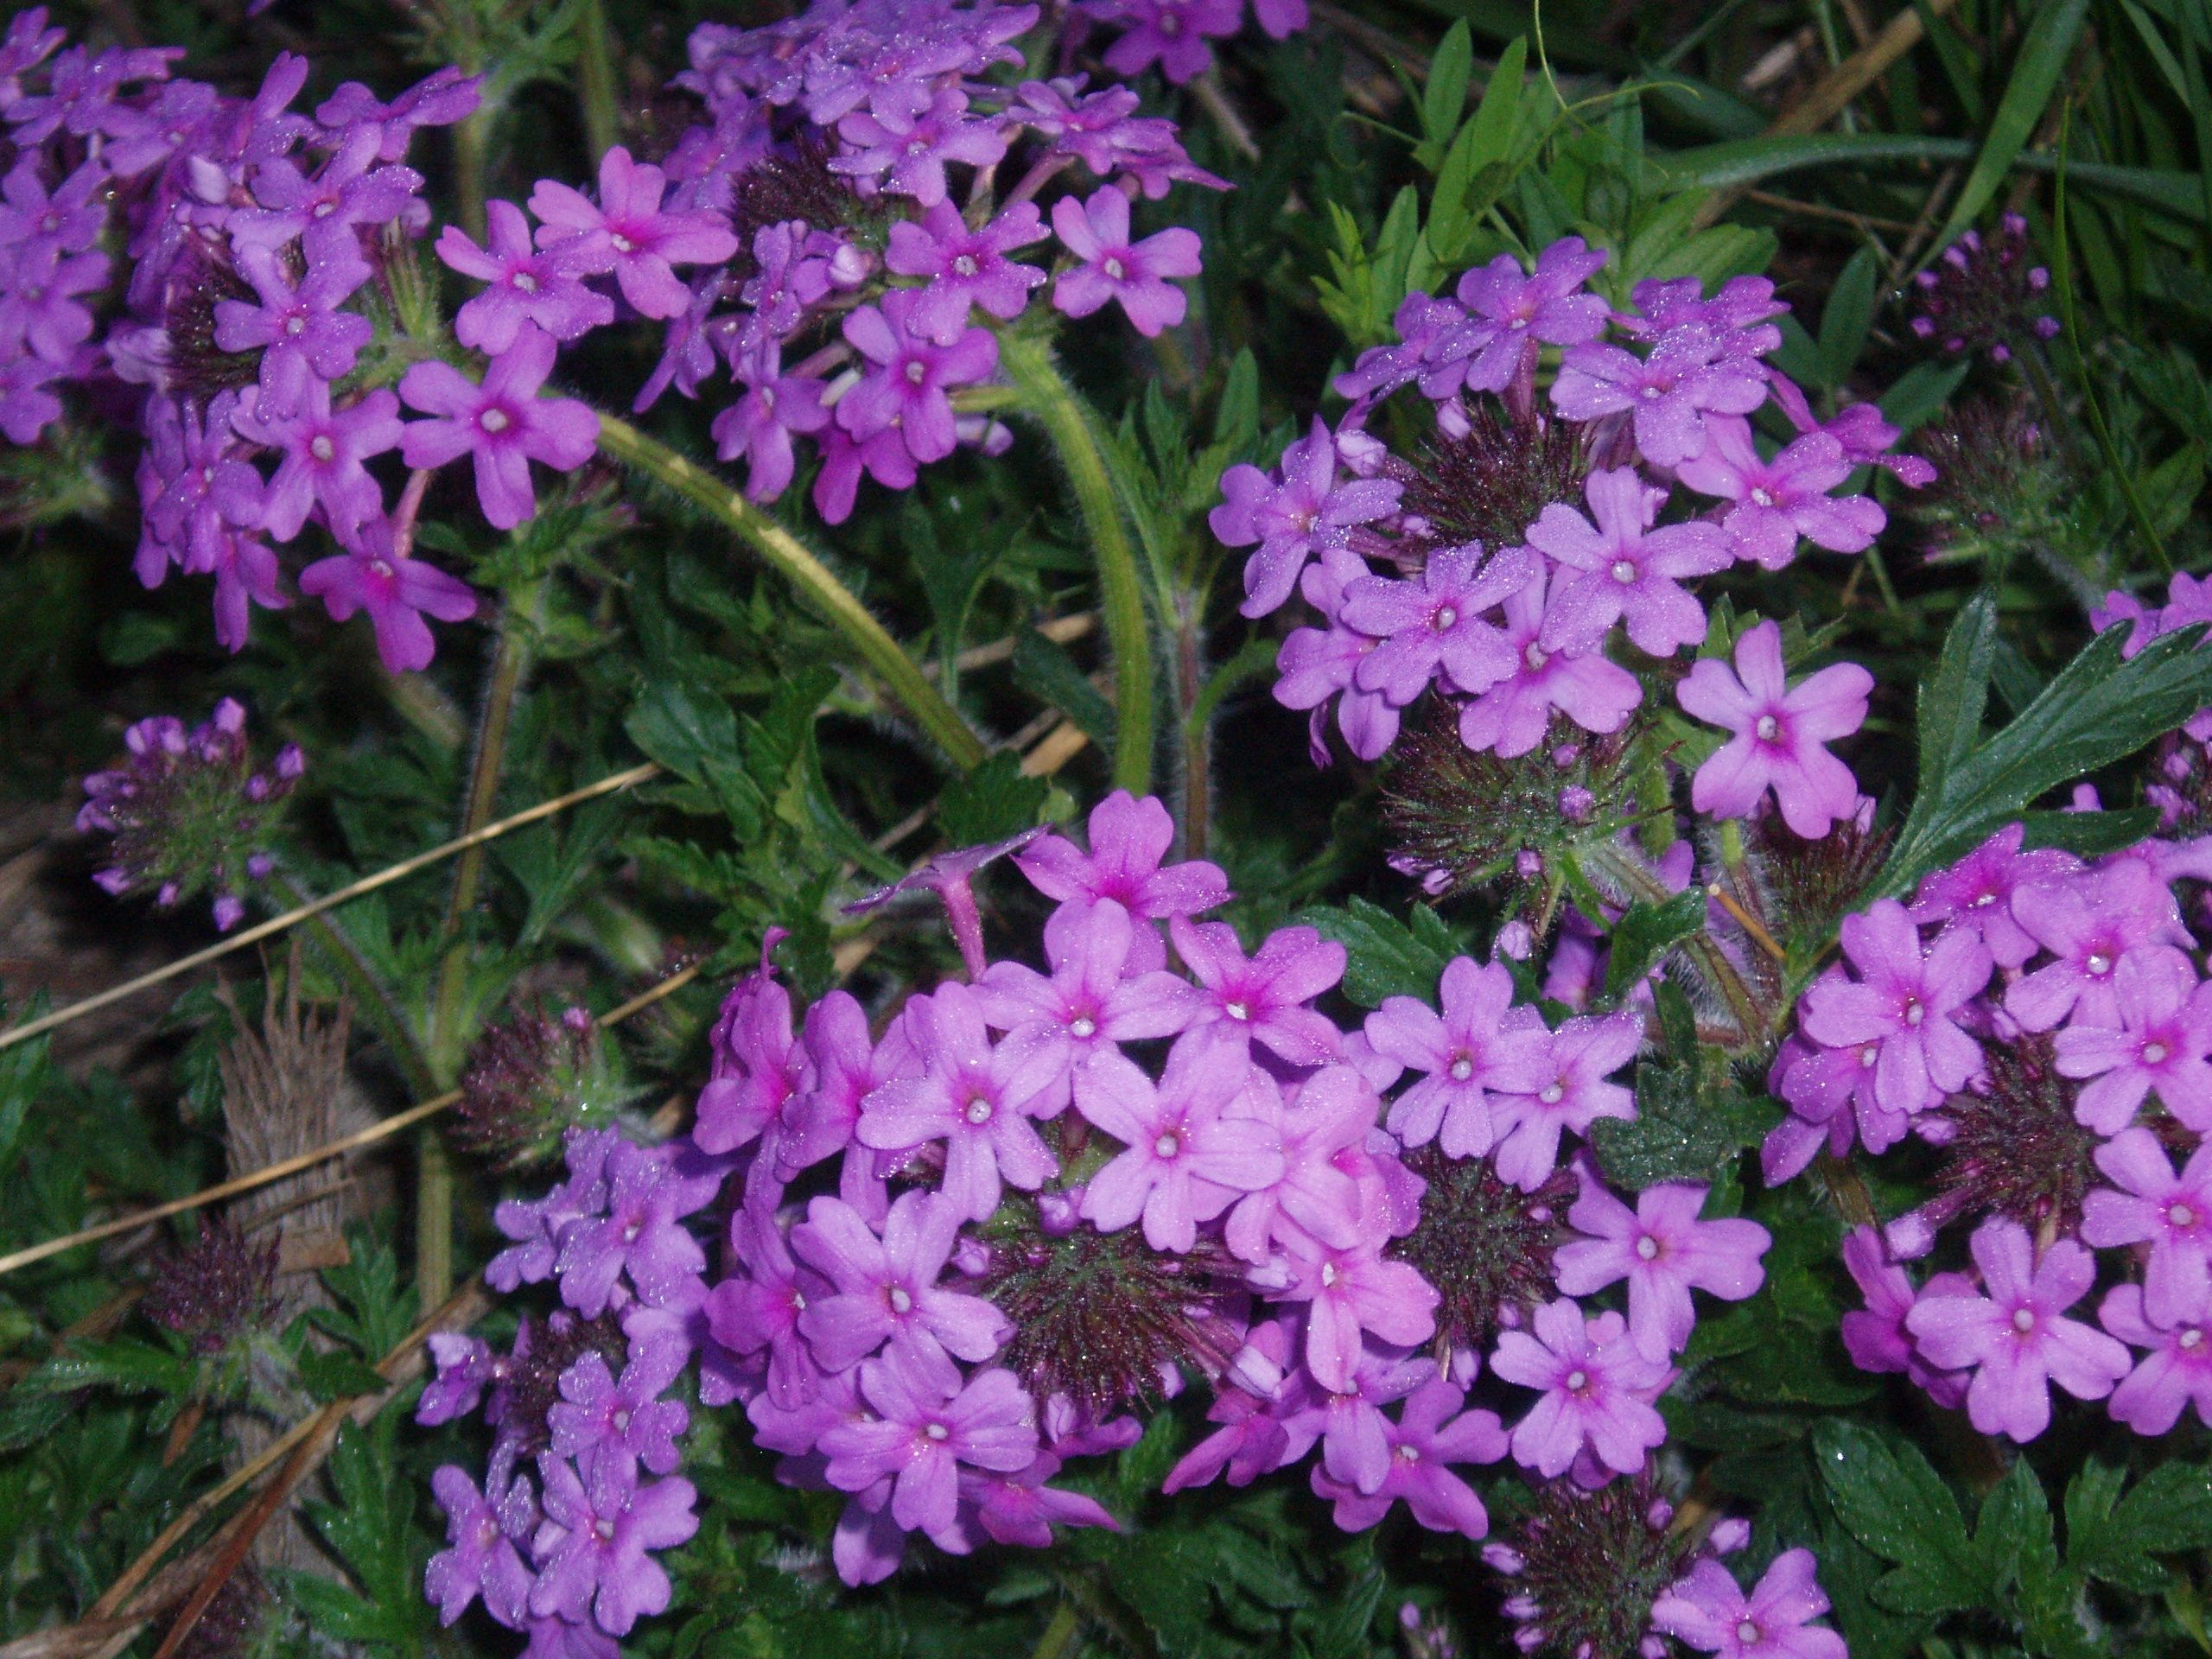 "{""blocks"":[{""key"":""6ahpr"",""text"":""Glandularia canaden (Verbena canadensis) Rose Vervain - potted plants  john@easywildflowers.com"",""type"":""unstyled"",""depth"":0,""inlineStyleRanges"":[],""entityRanges"":[],""data"":{}}],""entityMap"":{}}"